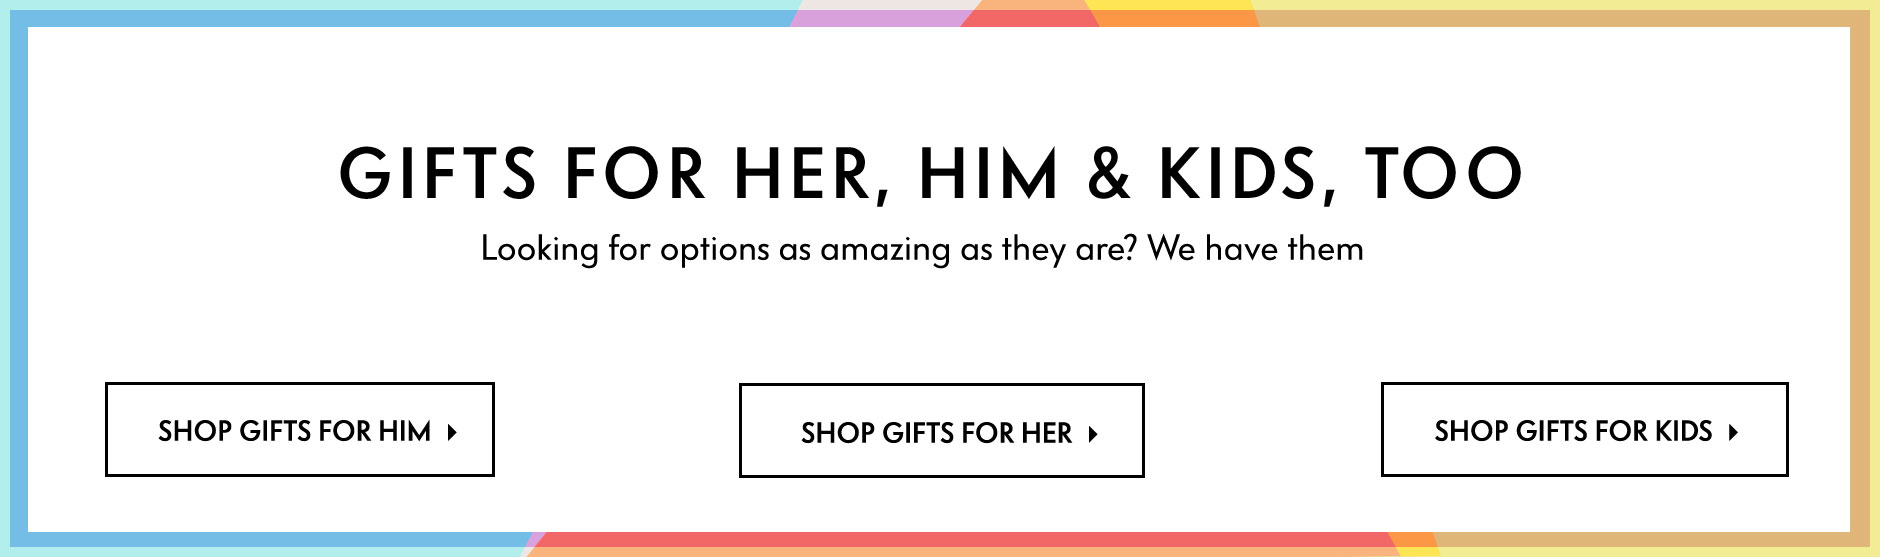 Gifts For Her, Him & Kids, Too - Looking for options as amazing as they are? We have them